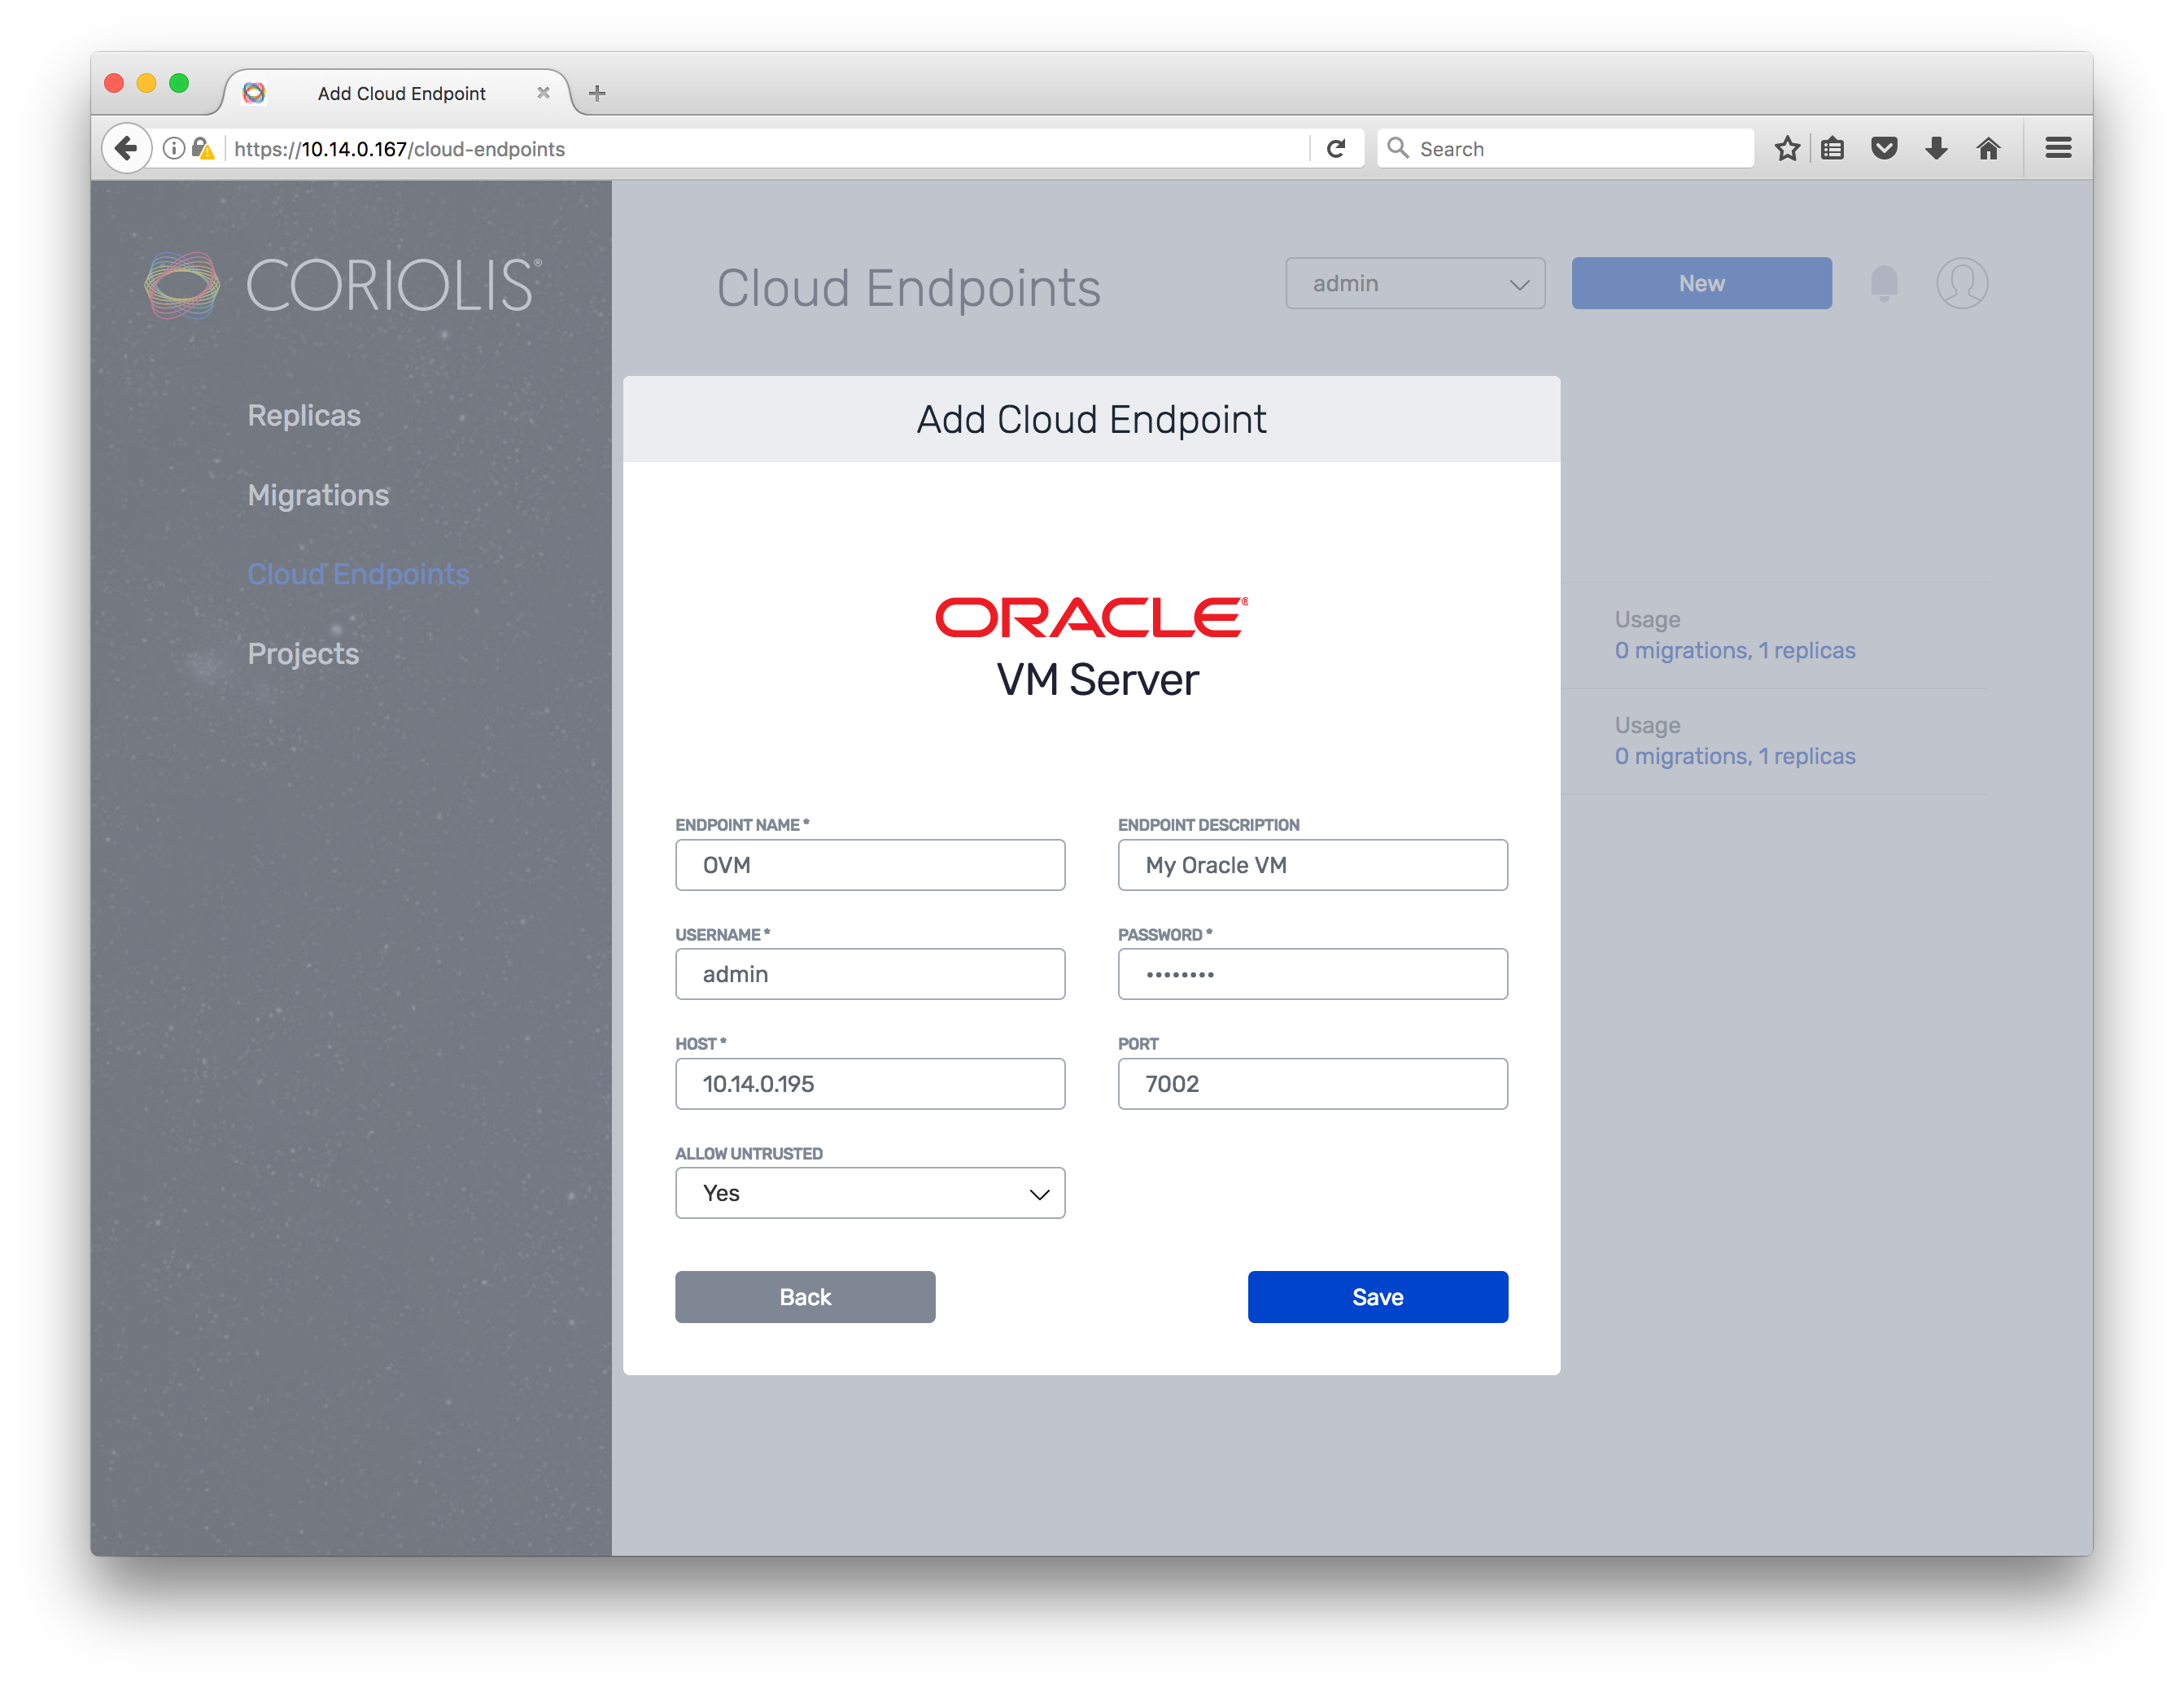 Coriolis - How to migrate VMs from VMware to Oracle VM using